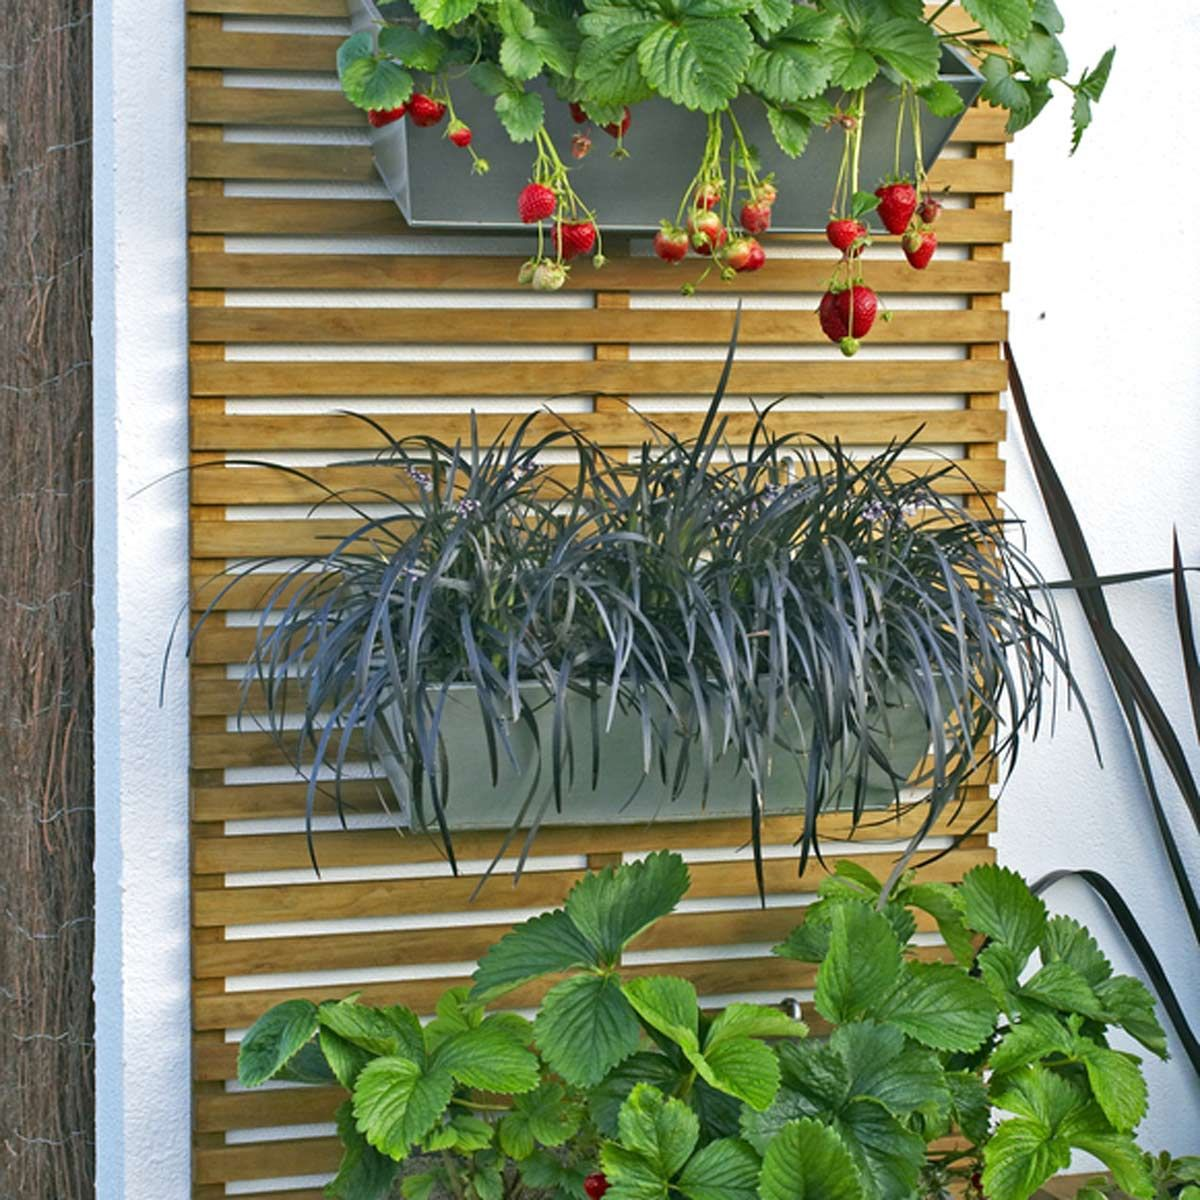 Patio Garden Ideas For Every Space: 14 Smart Small Yard Landscaping Ideas